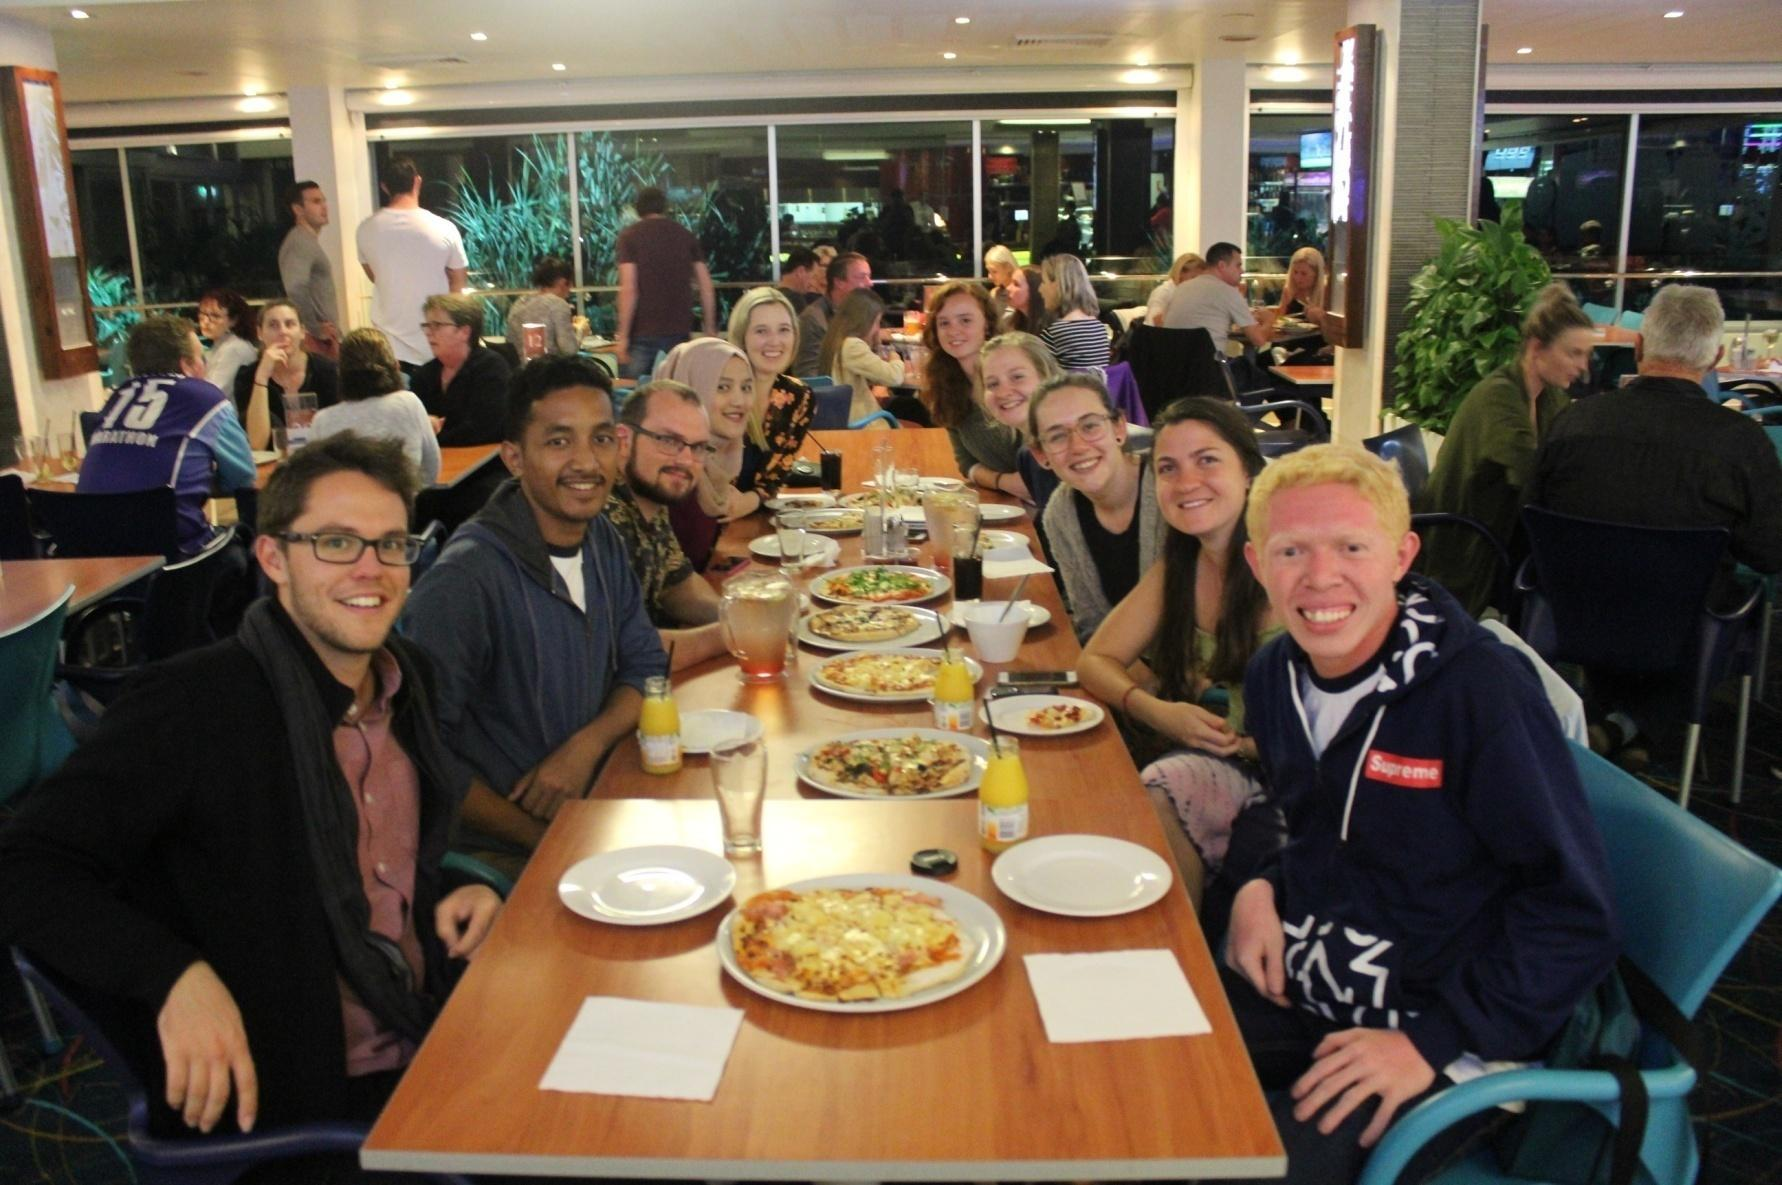 Doing some small talk about UniBRIDGE Project with members of AIYA QLD and pizza dinner in Sunshine Coast Surfing Club.